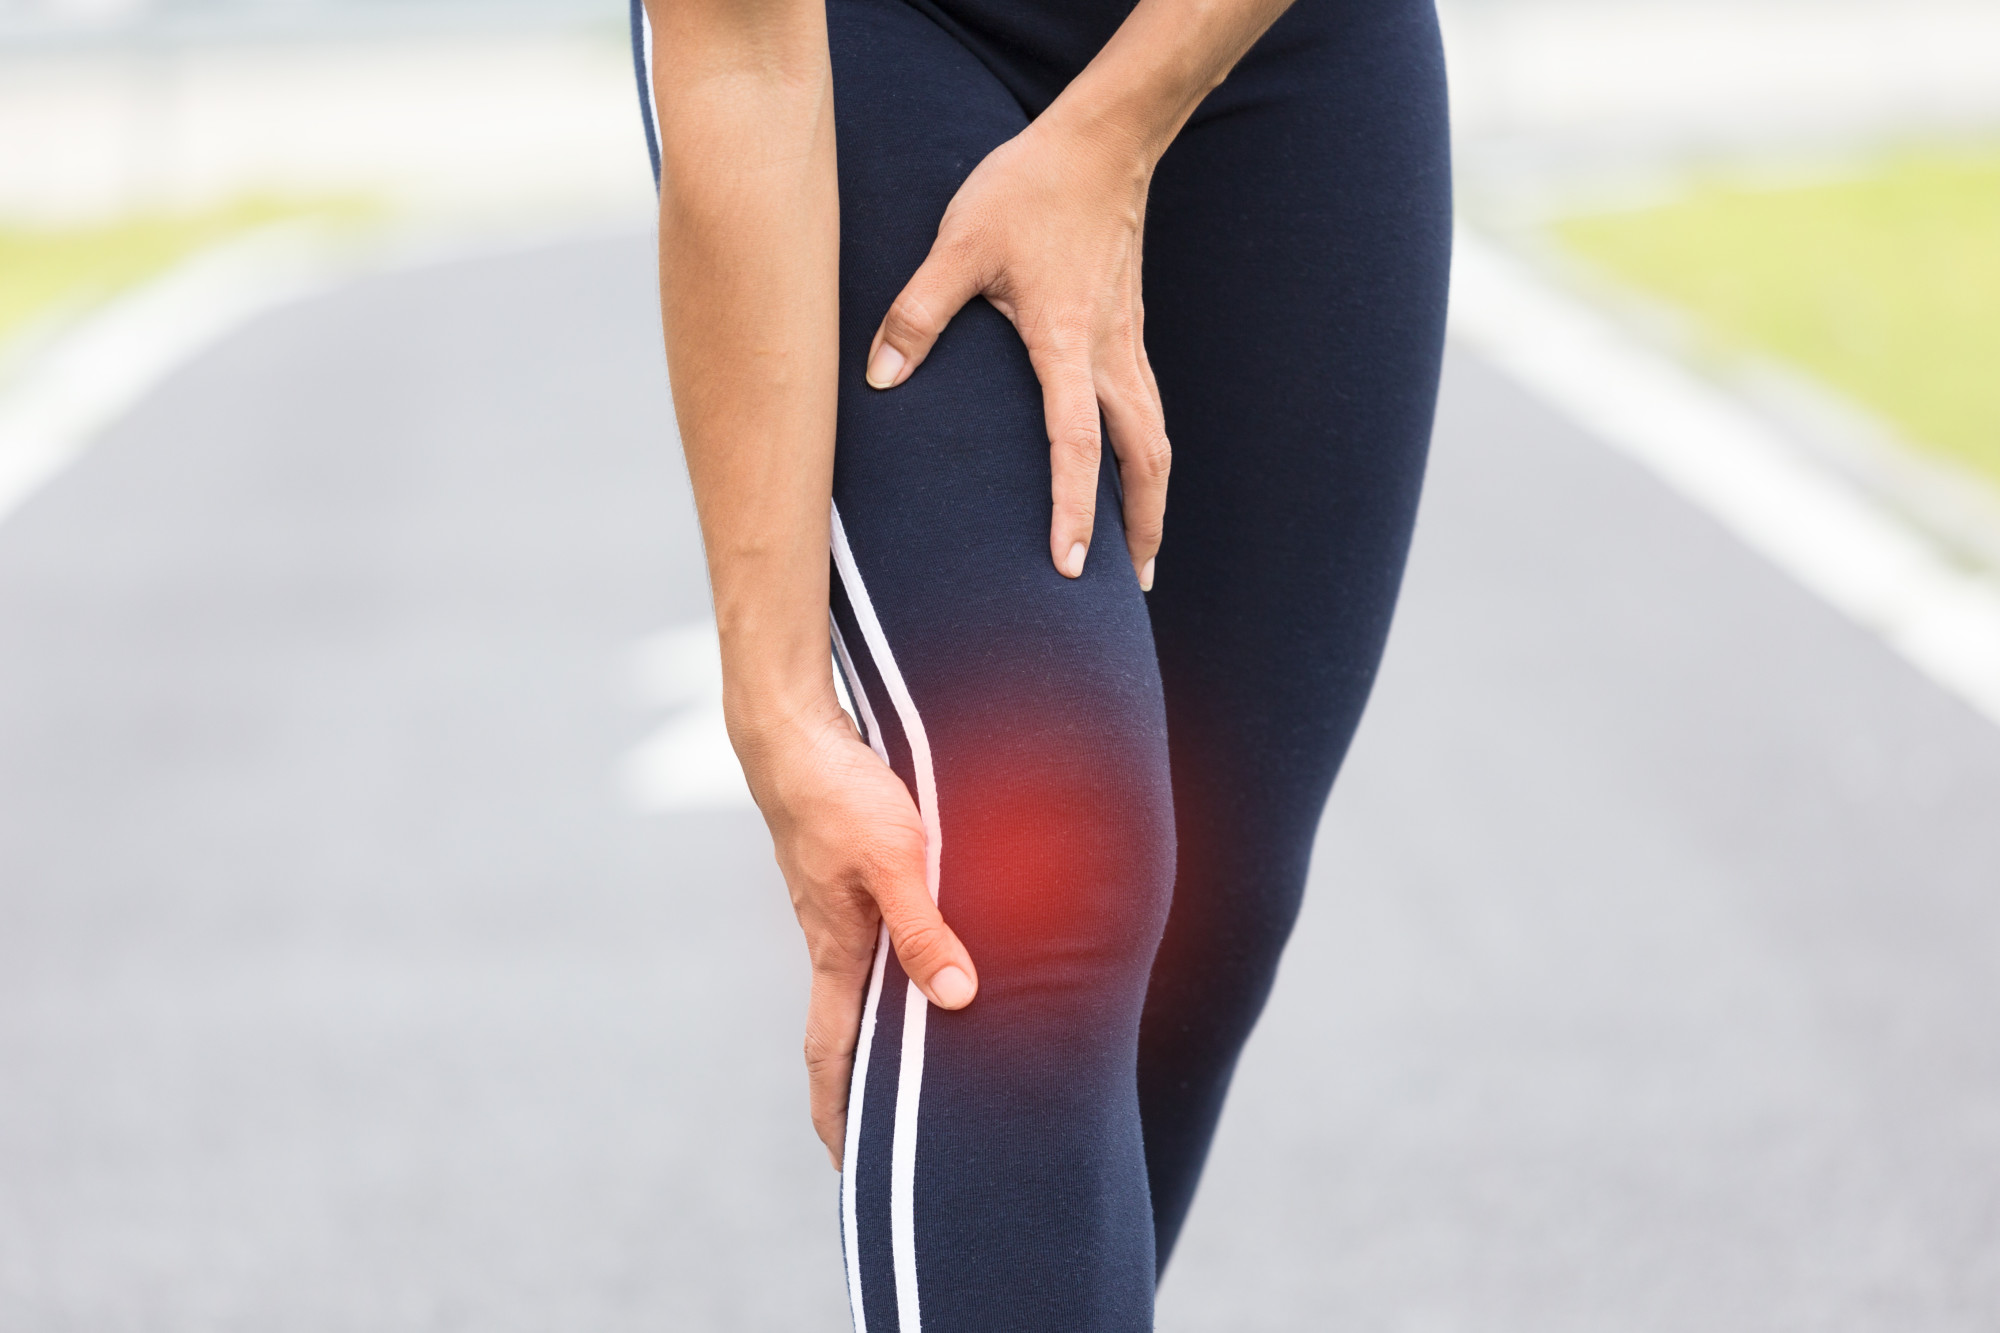 person with runner's knee